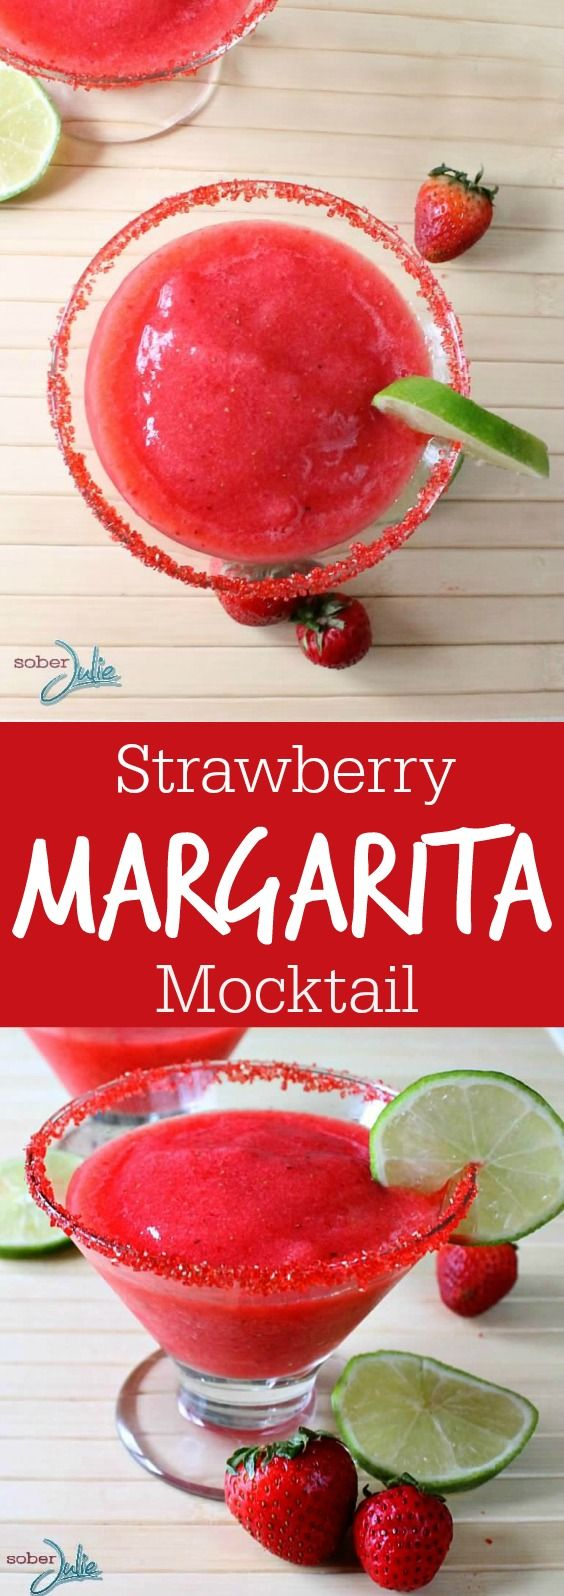 Strawberry Margarita Mocktails non alcoholic drink recipe via Sober Julie - The BEST Easy Non-Alcoholic Drinks Recipes - Creative Mocktails and Family Friendly, Alcohol-Free, Big Batch Party Beverages for a Crowd! #mocktails #virgindrinks #alcoholfreedrinks #nonalcoholicdrinks #familyfriendlydrinks #partypunch #partydrinks #newyearseve #partydrinkrecipes